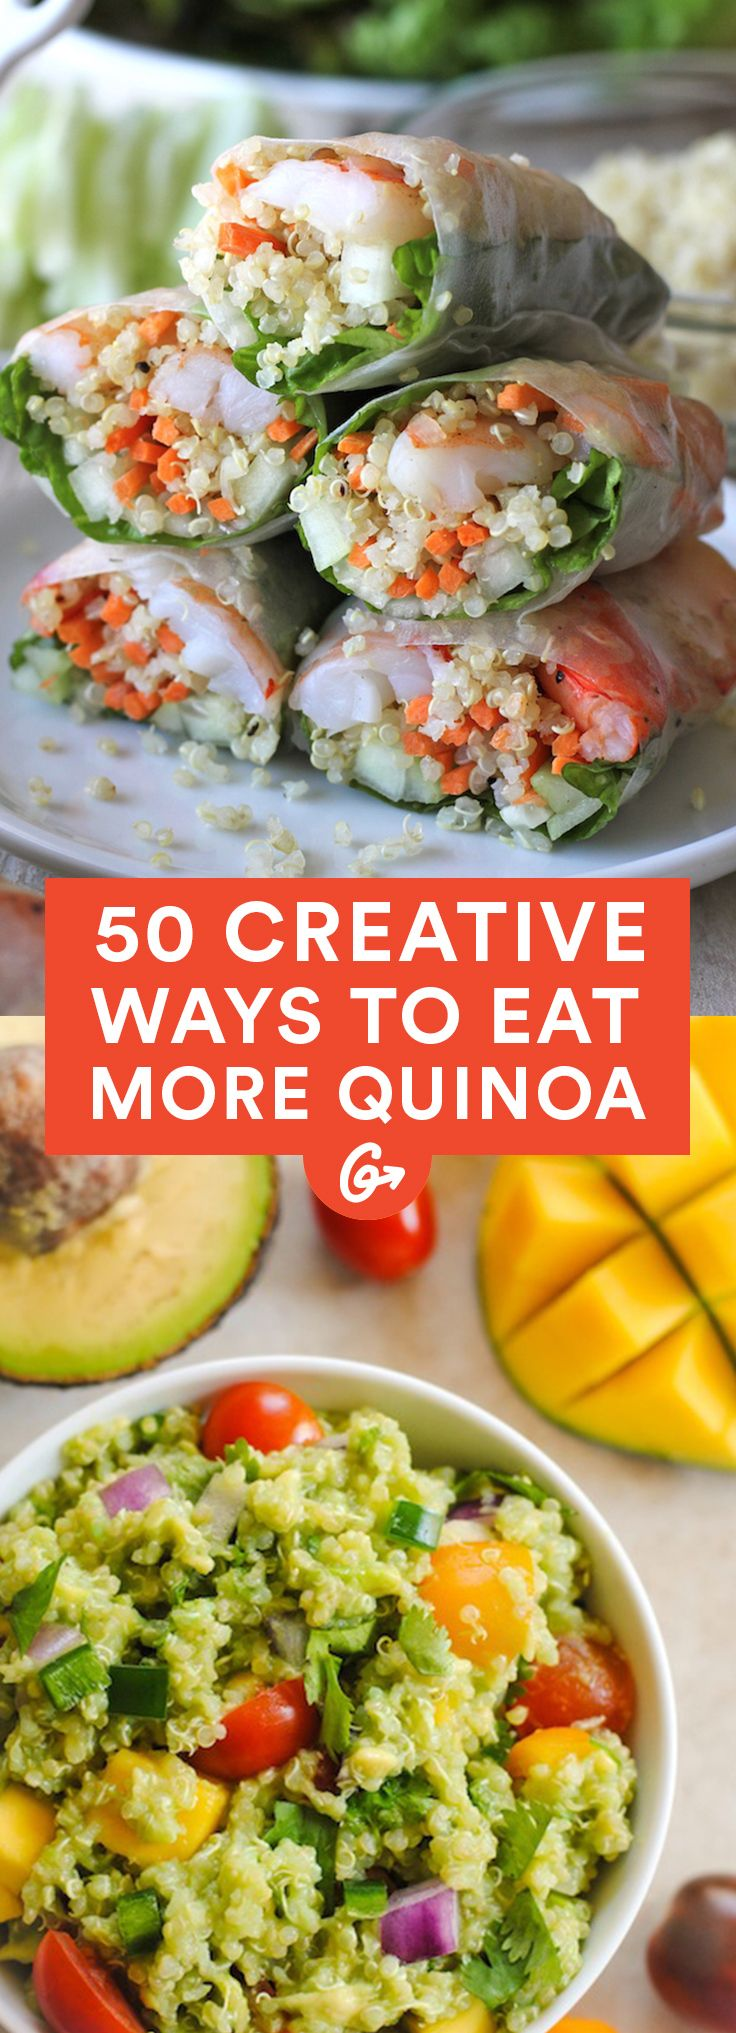 It may no longer be the international year of quinoa, but it's safe to say that quinoa mania is here to stay #creative #quinoa #recipes http://greatist.com/eat/creative-ways-to-eat-quinoa